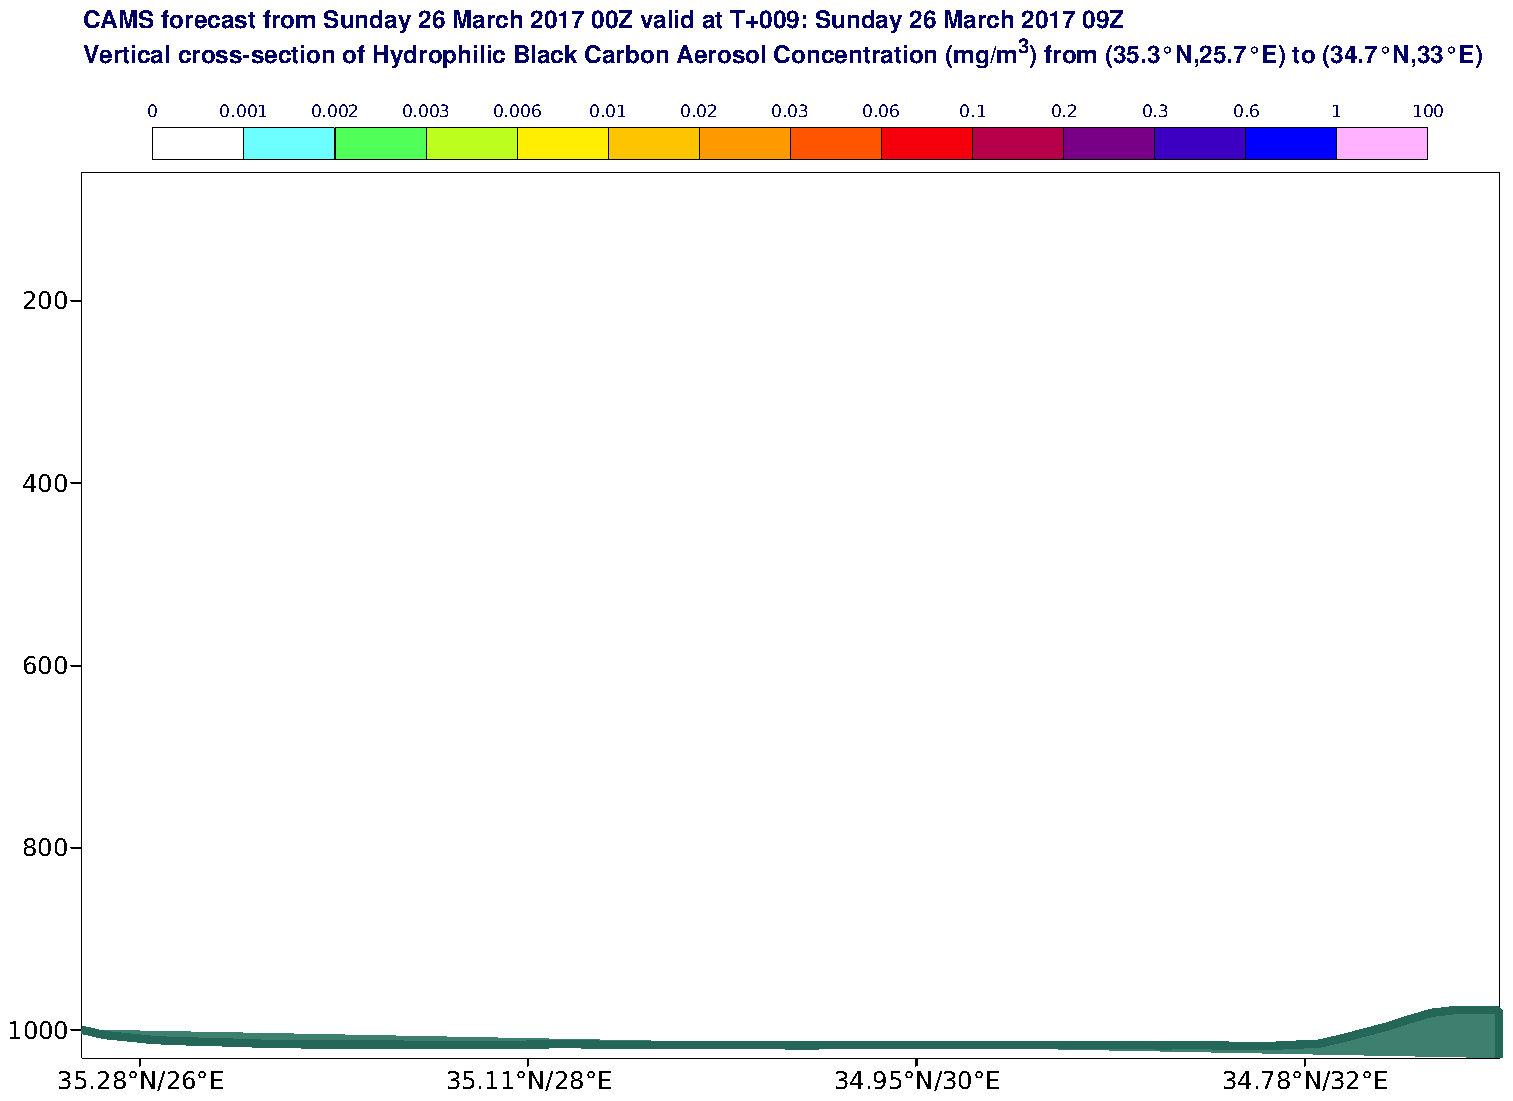 Vertical cross-section of Hydrophilic Black Carbon Aerosol Concentration (mg/m3) valid at T9 - 2017-03-26 09:00